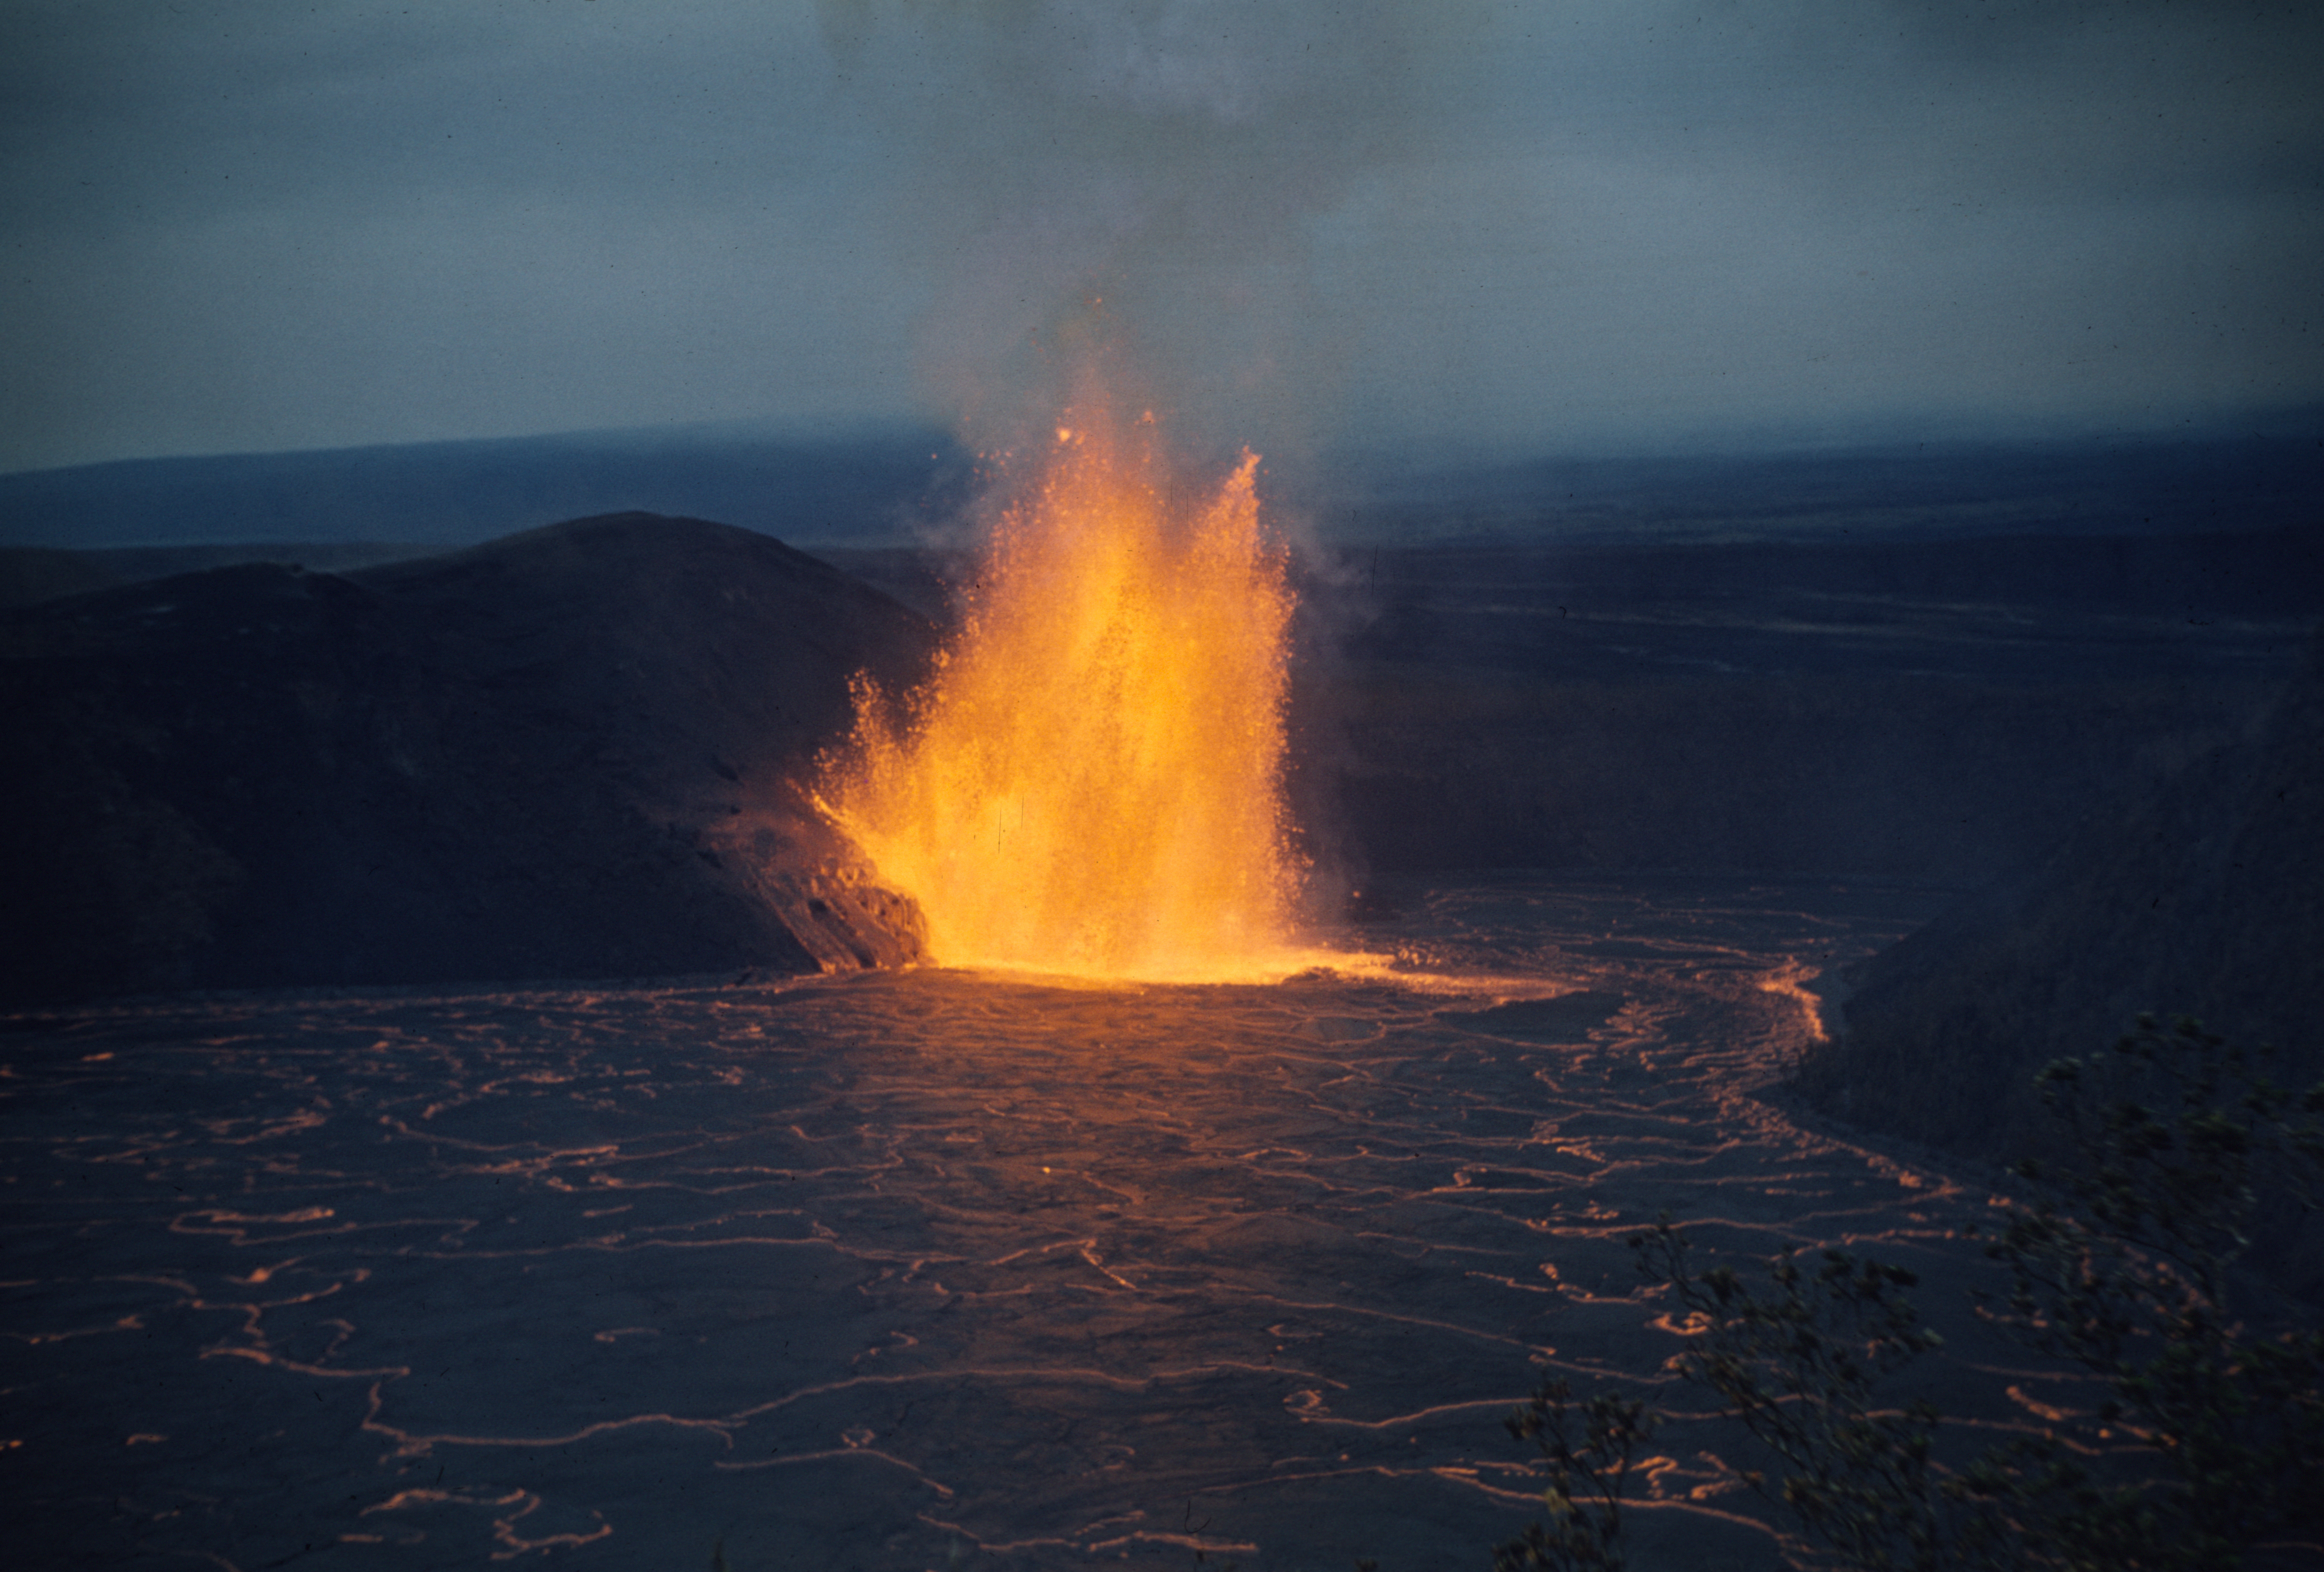 Free download high resolution image - free image free photo free stock image public domain picture -Lava fountain shimmers across lava lake in Kīlauea Iki Crater